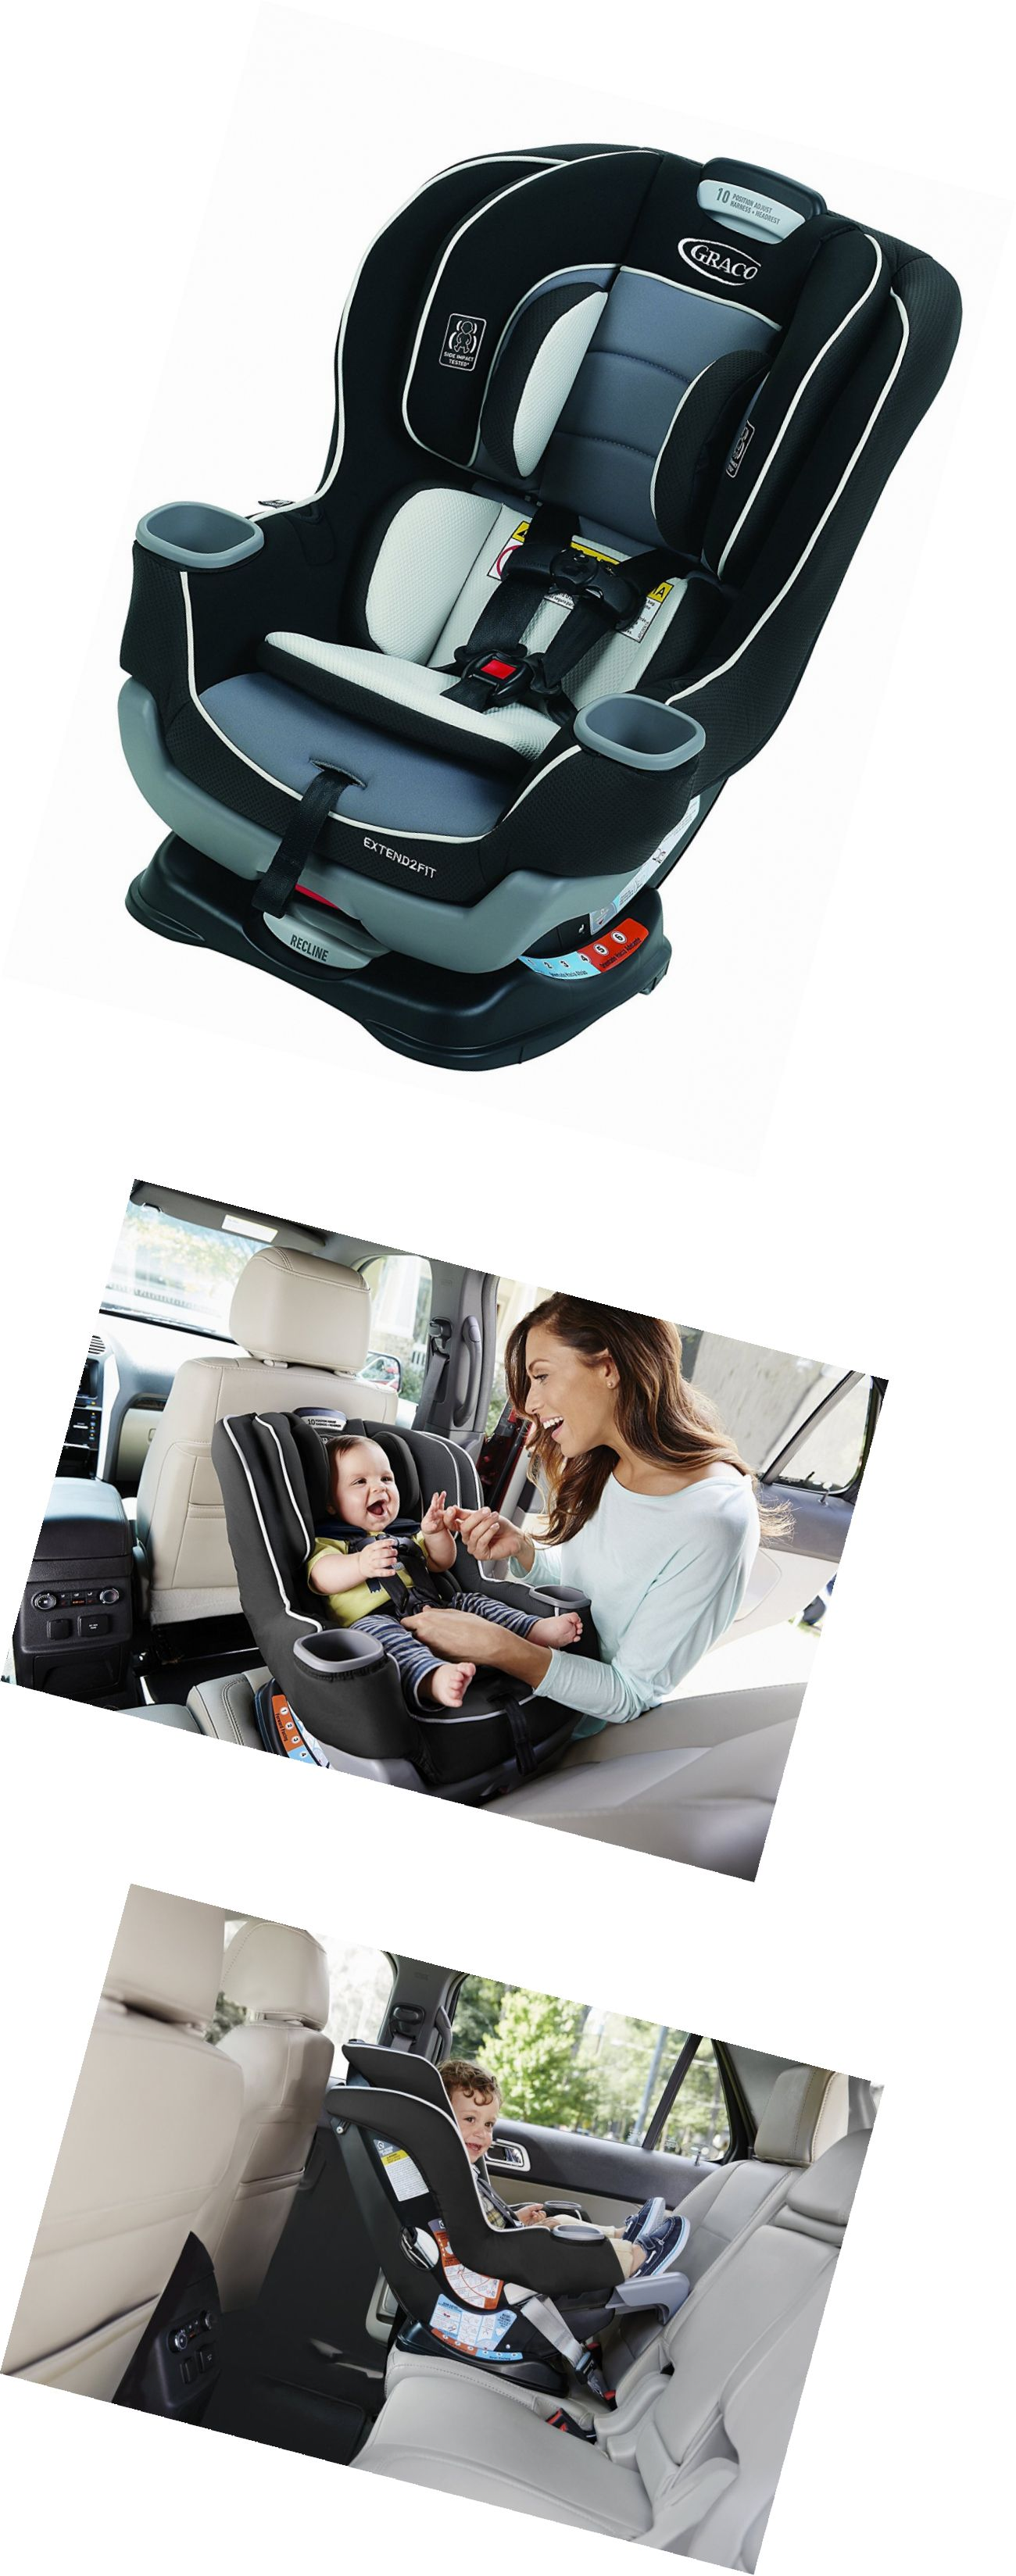 Infant Car Seat 5 20 Lbs 66696 Graco Extend2fit Convertible Gotham